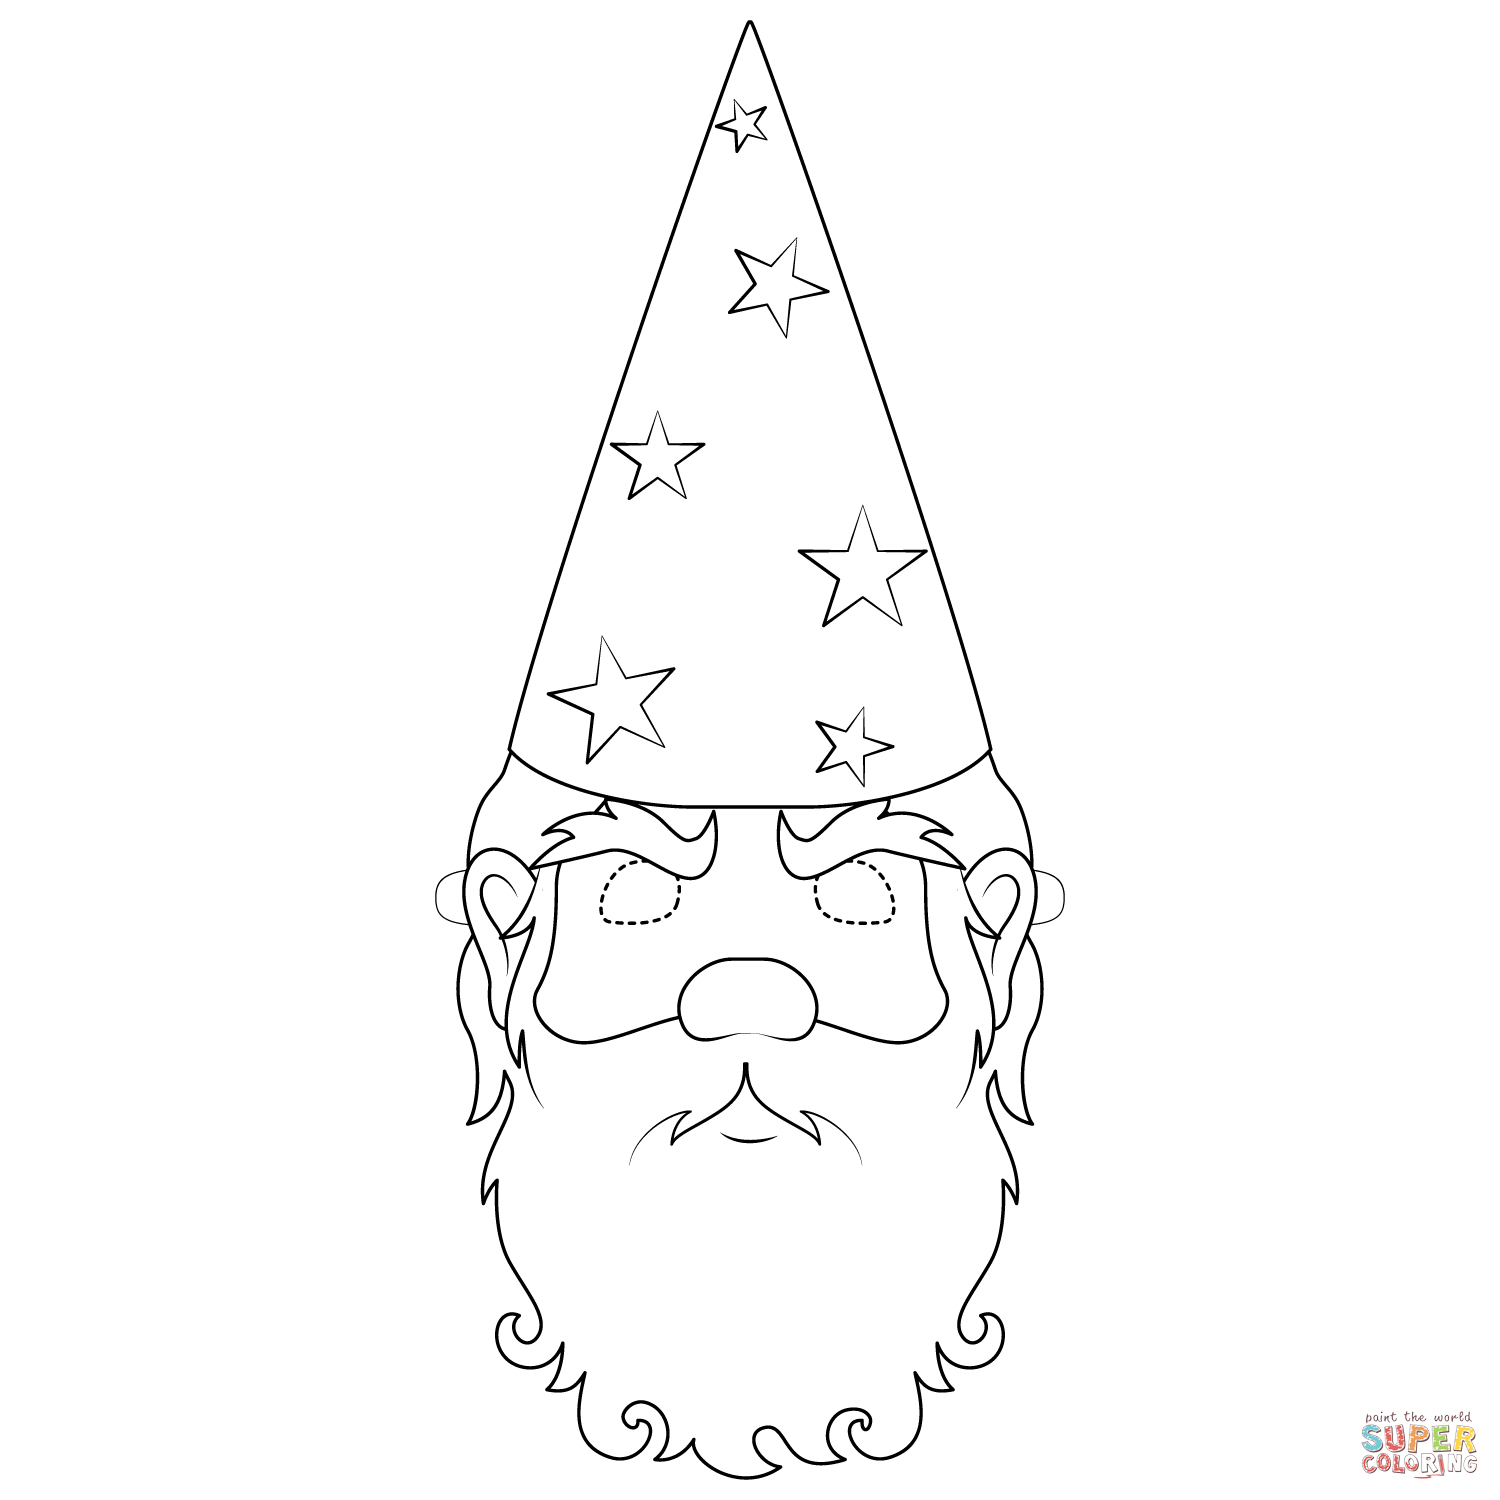 Wizard Mask Coloring Page | Free Printable Coloring Pages - Free Printable Wizard Of Oz Masks